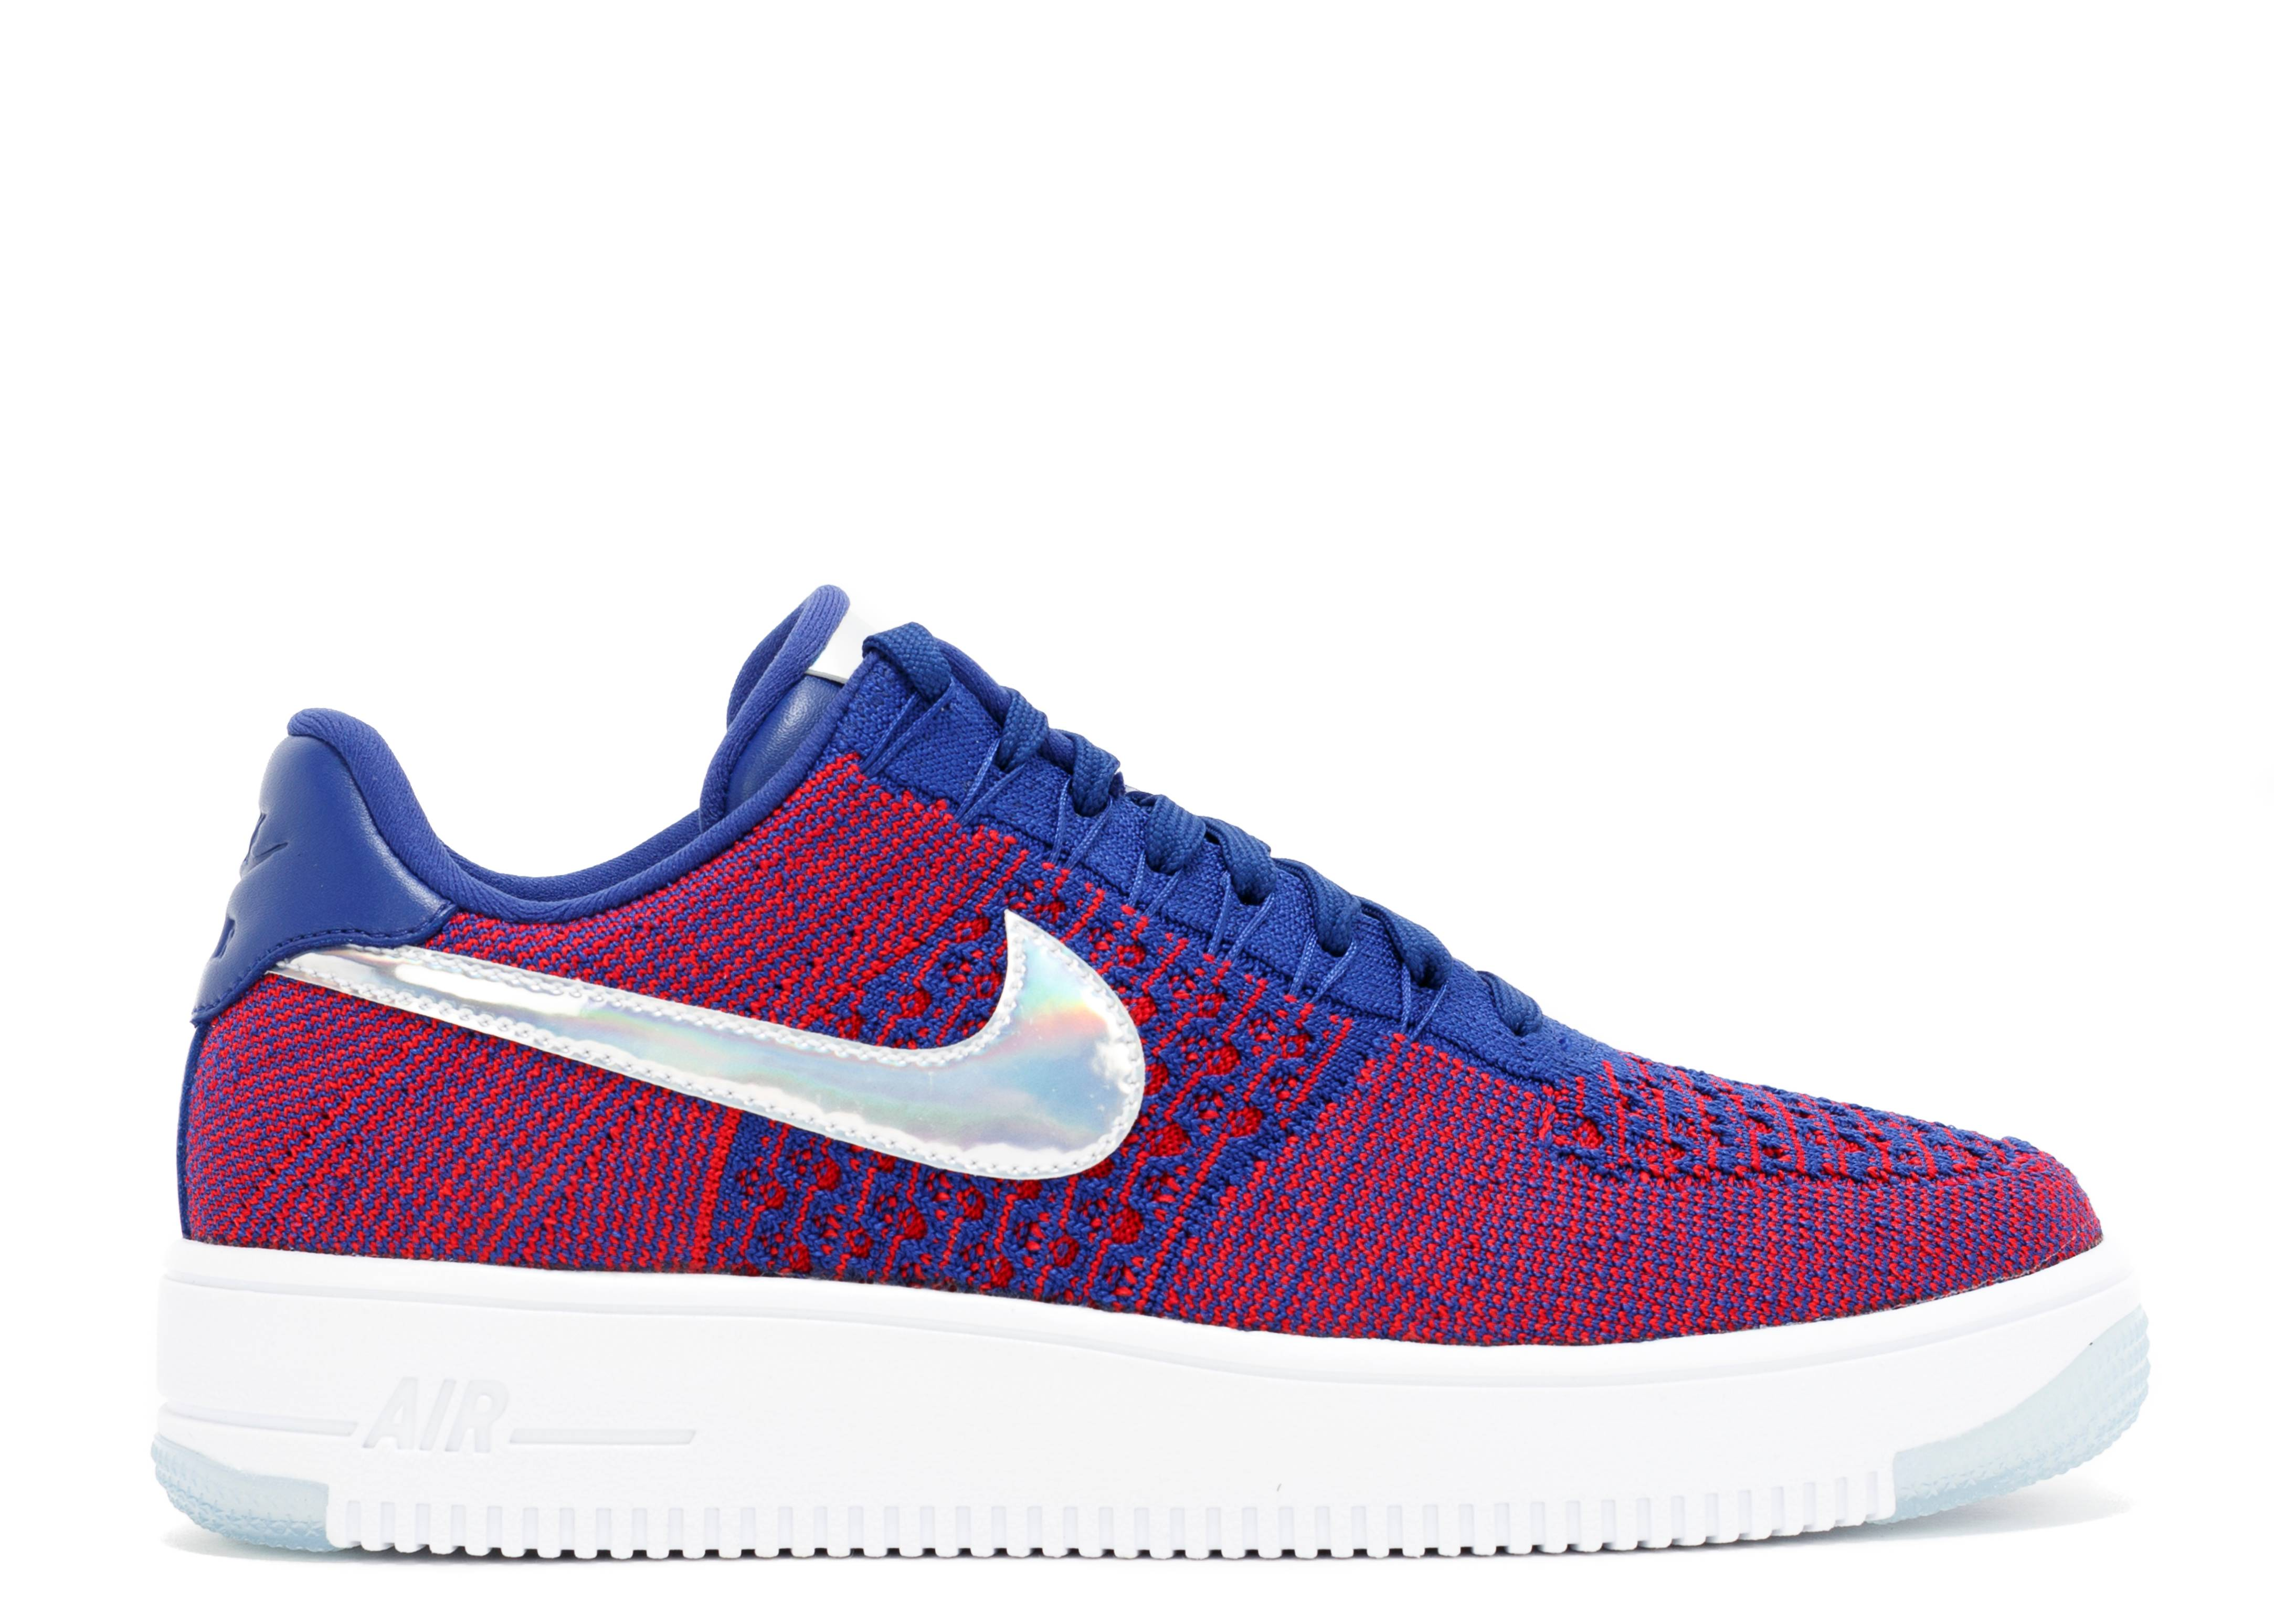 "af1 ultra flyknit low prm ""olympic"""